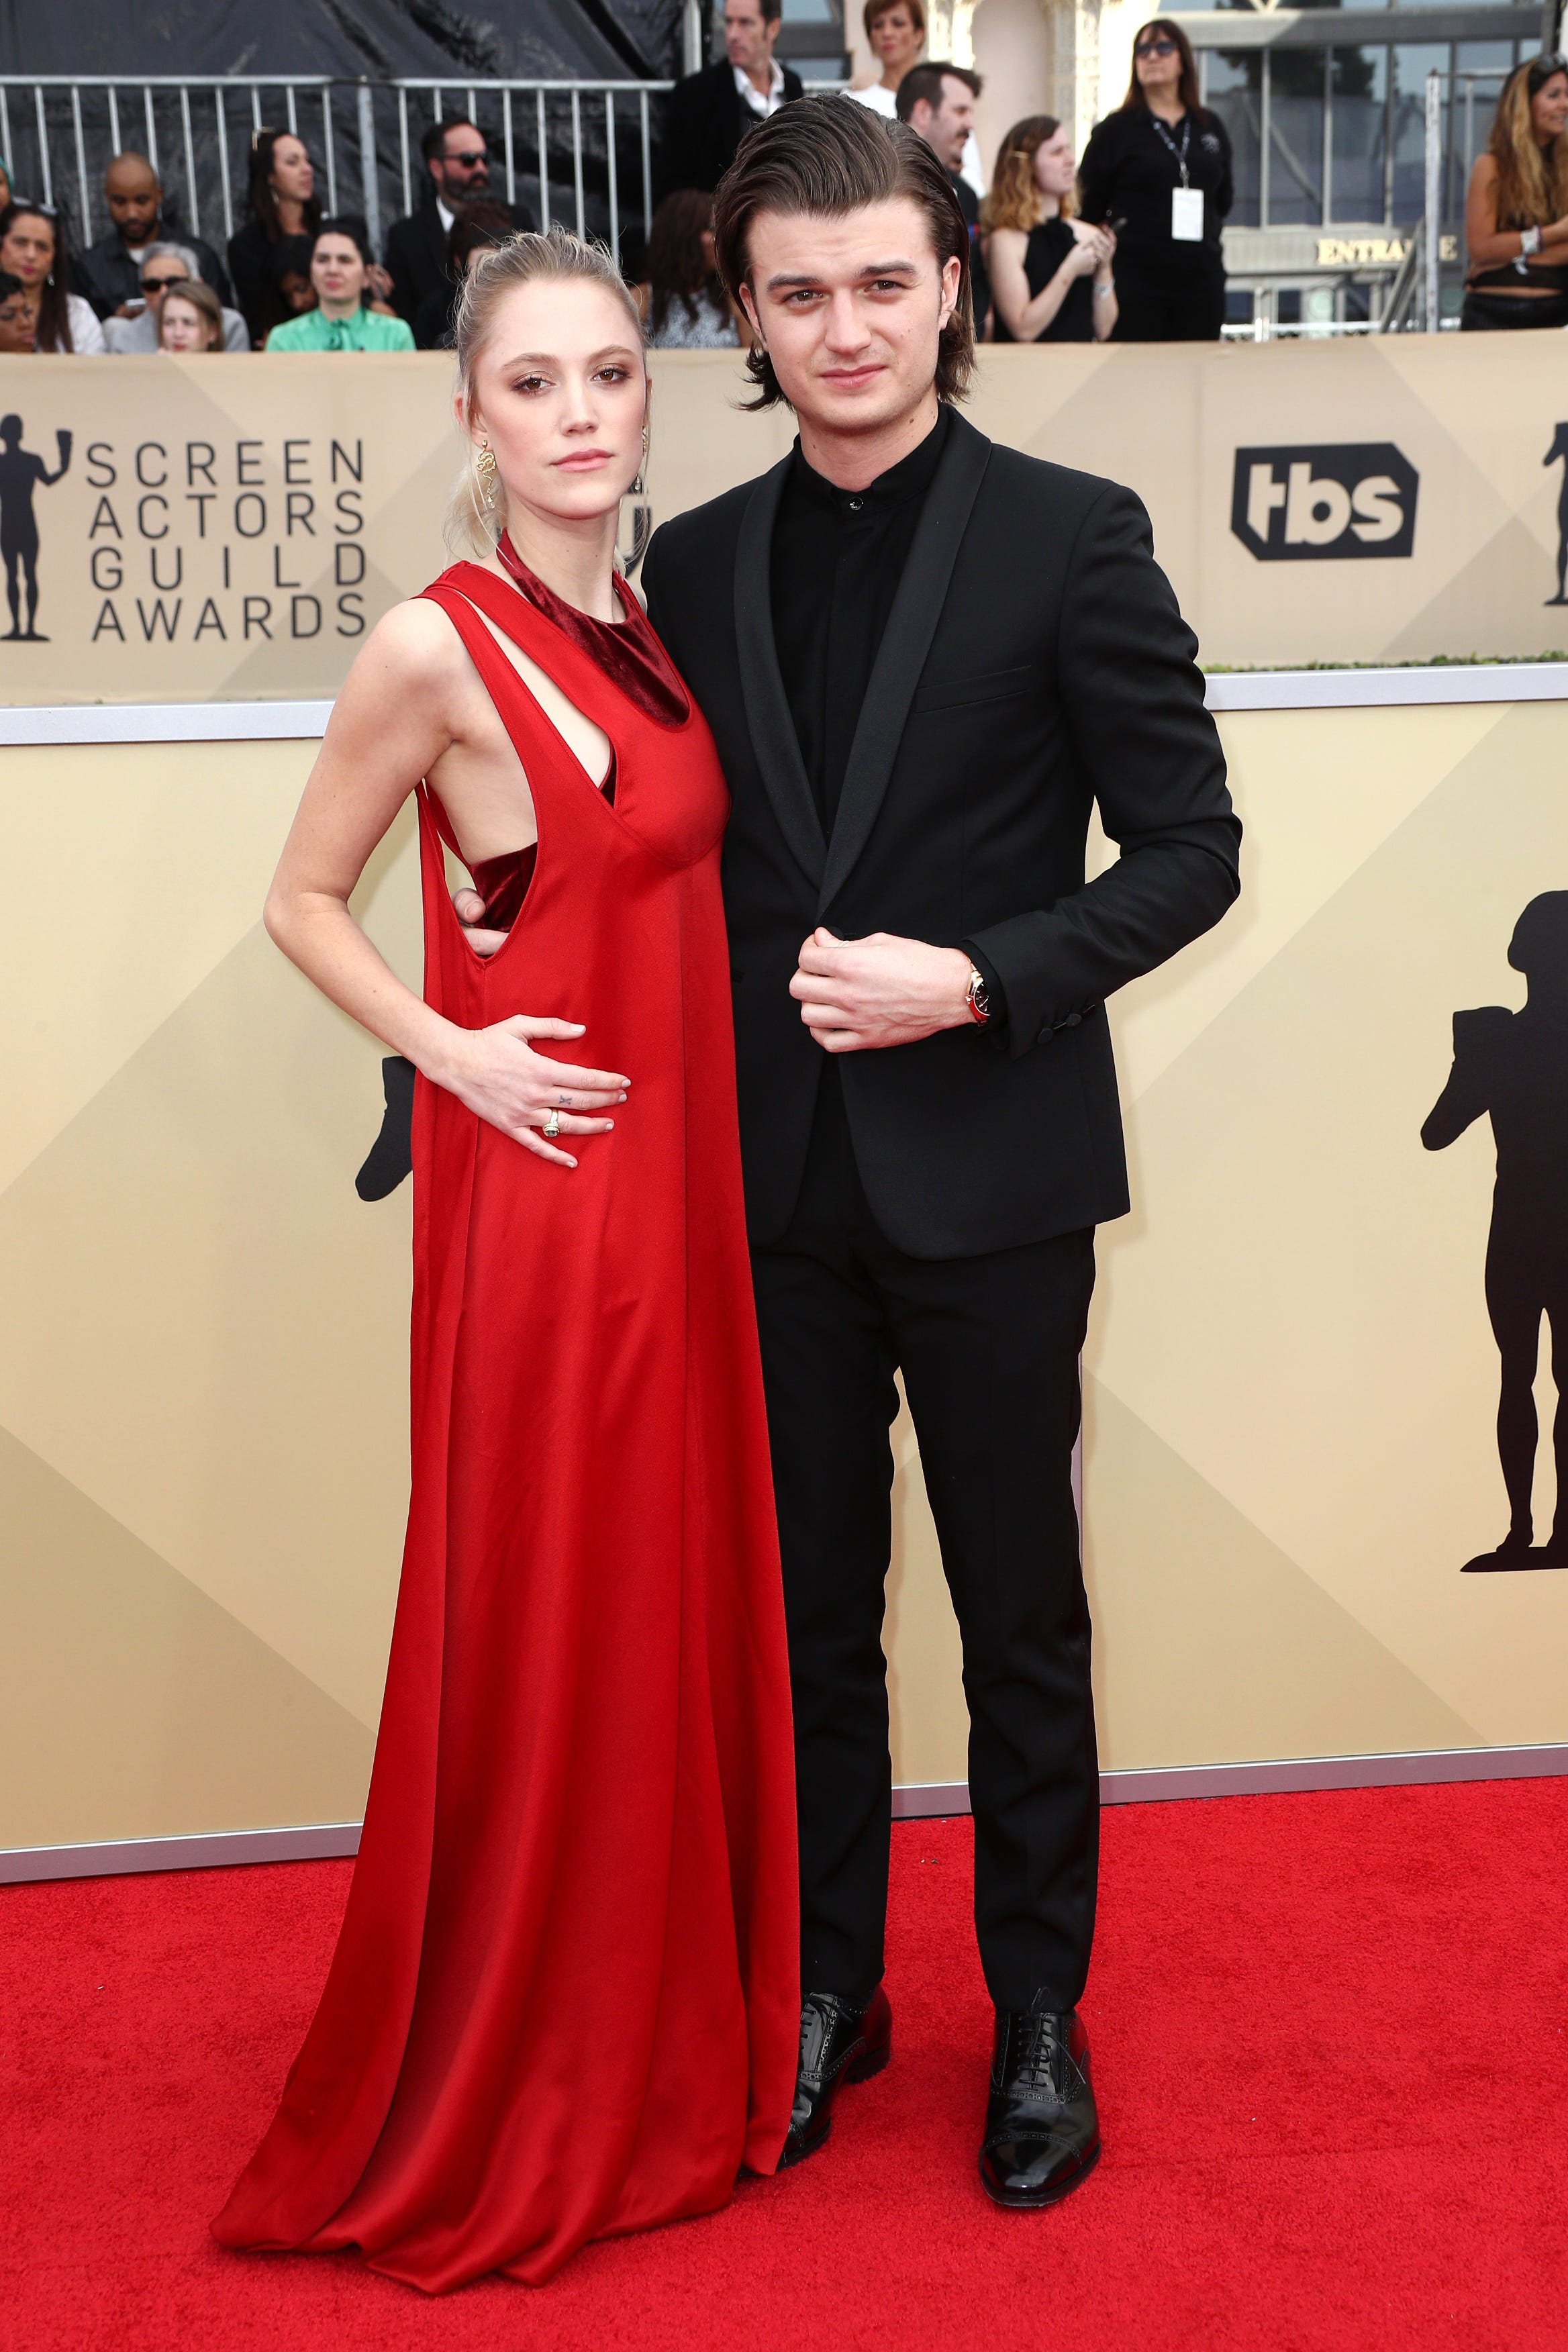 The Most Loved-Up Couples On The SAG Red Carpet